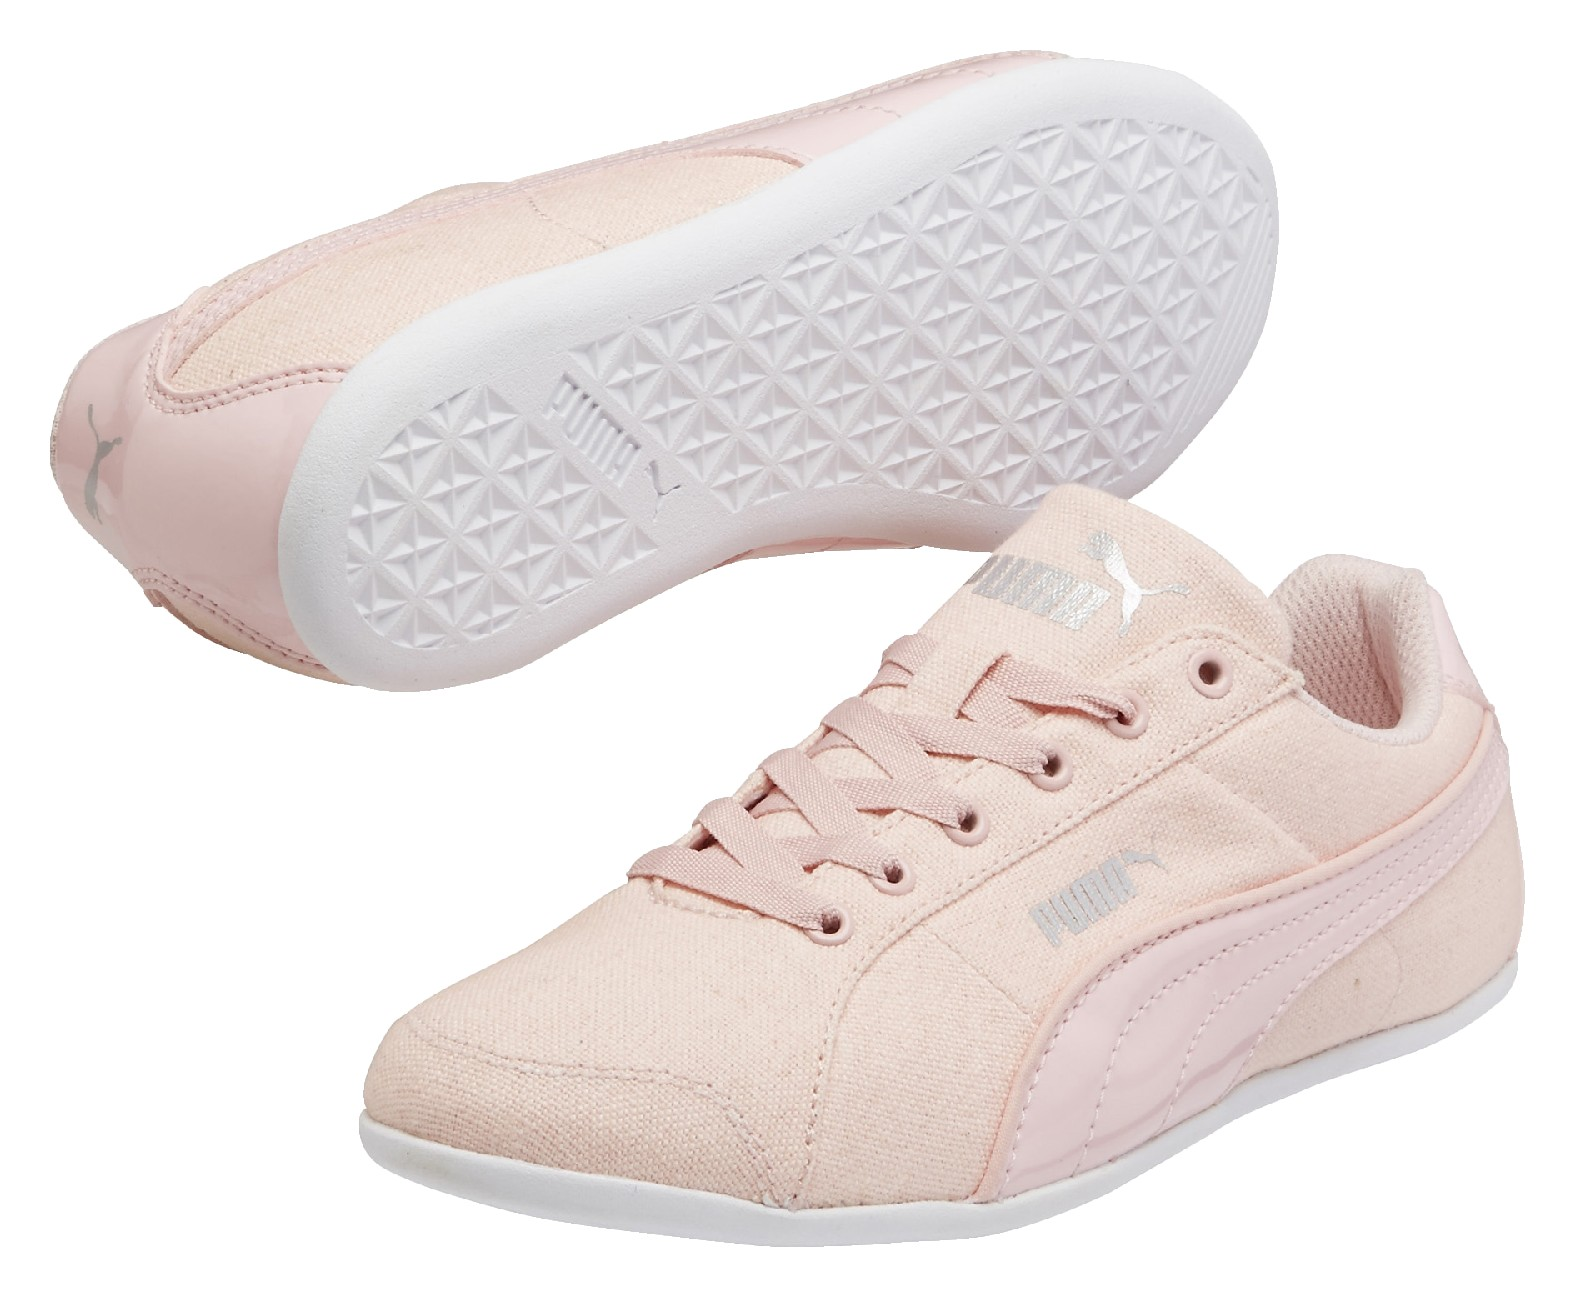 Puma MYNDY CV Jr, rose